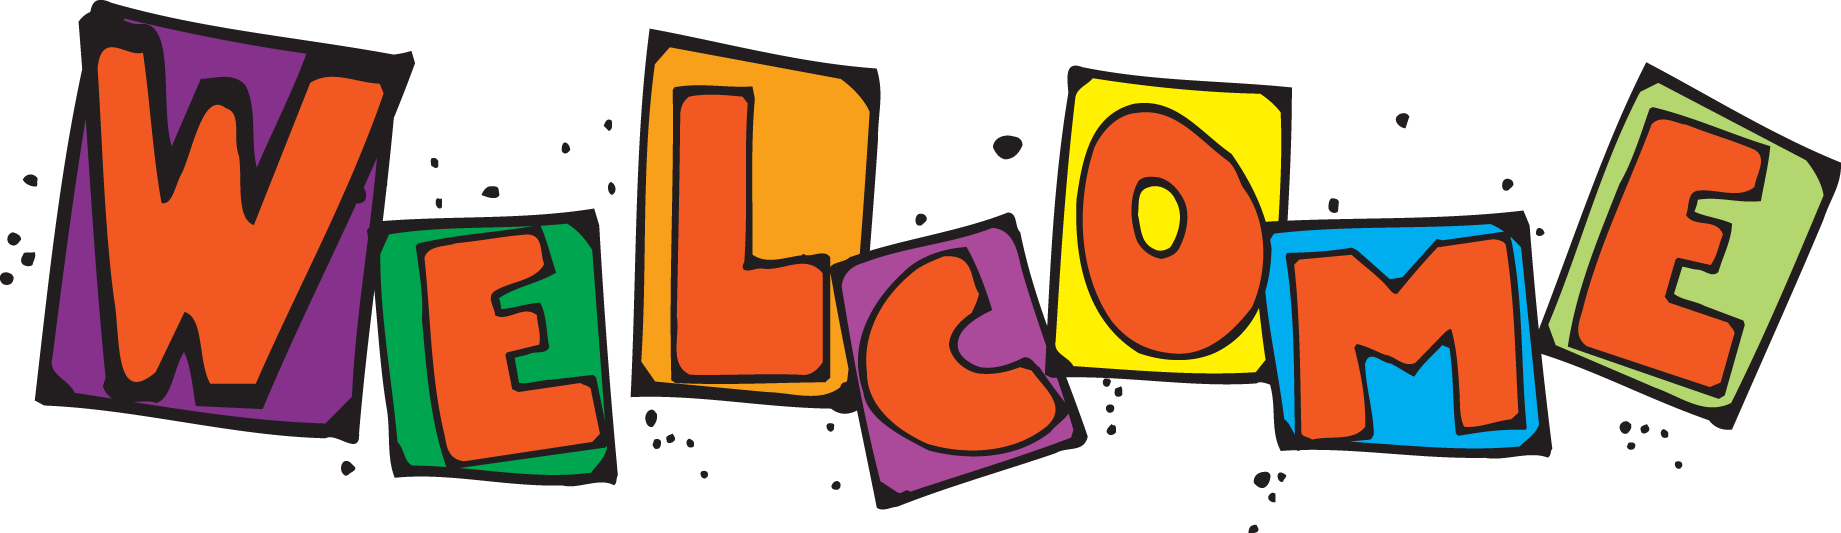 Welcome art letters blog property management condo board rental apartment